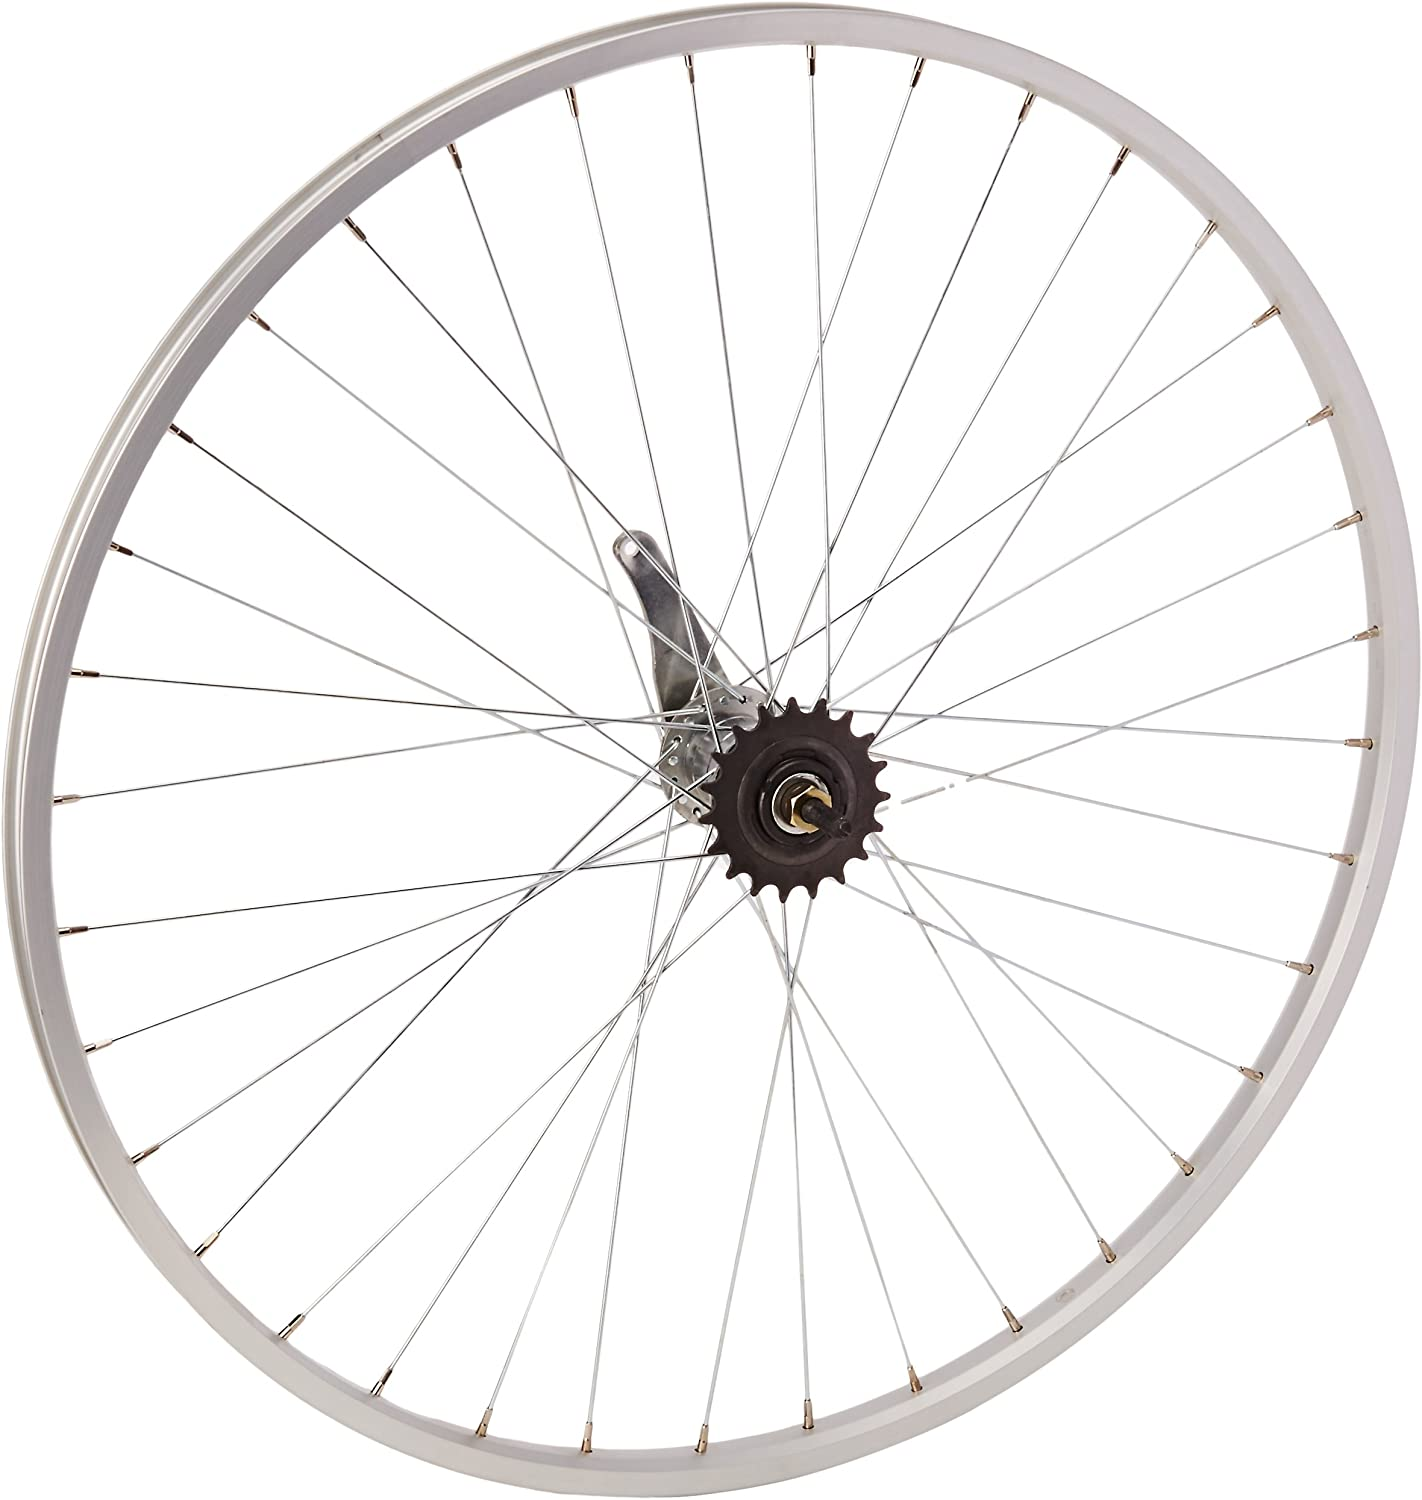 New 26 x 1 3//8 Coaster Brake Steel Chrome Bike Rear Wheel